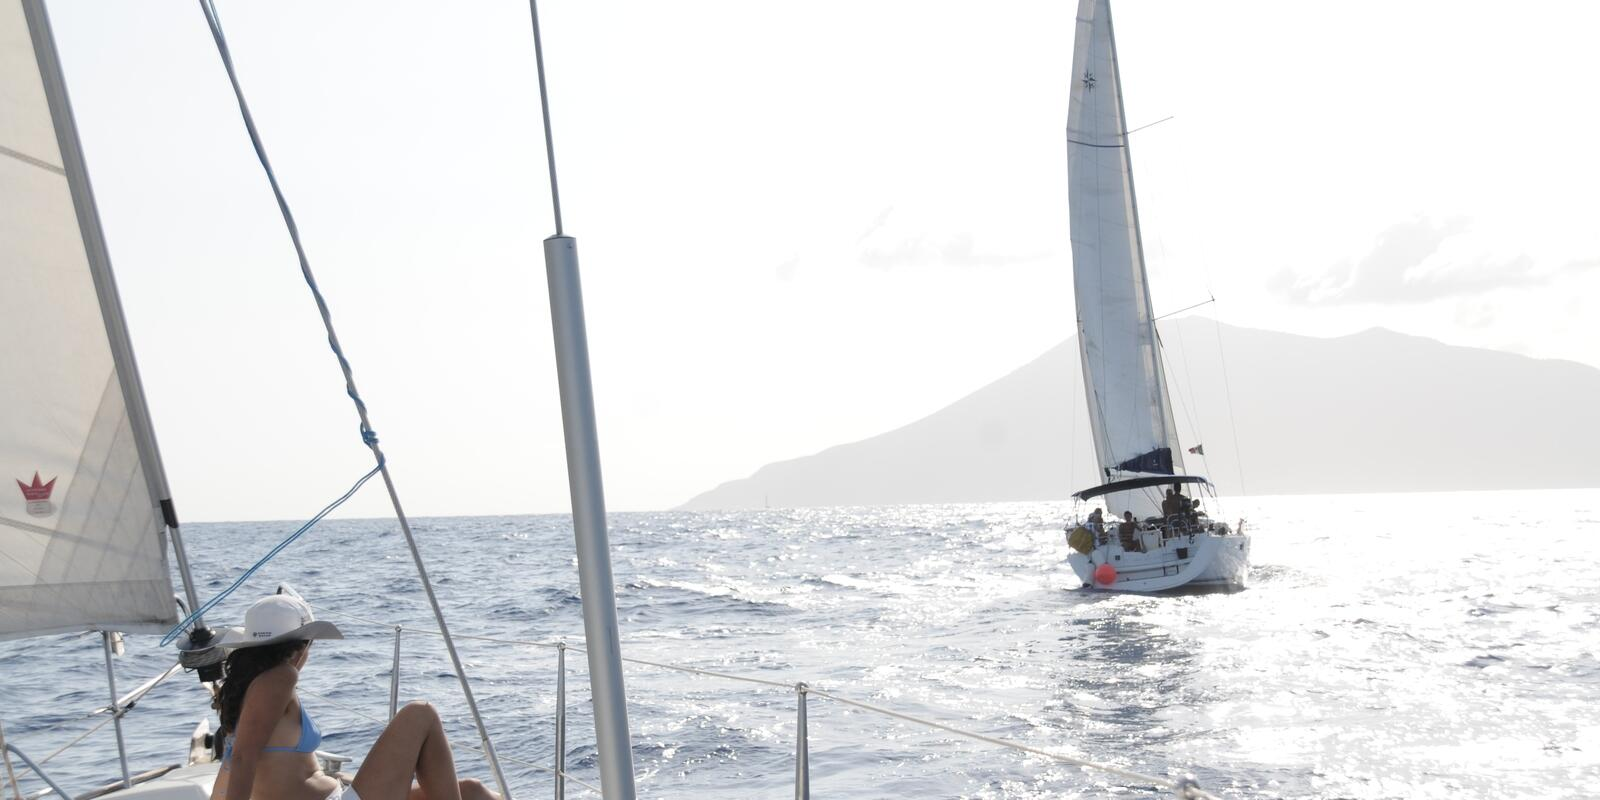 Sailing holiday to the Aeolian Islands in mini Flotilla: Sea, Sailing, Relaxation and Fun